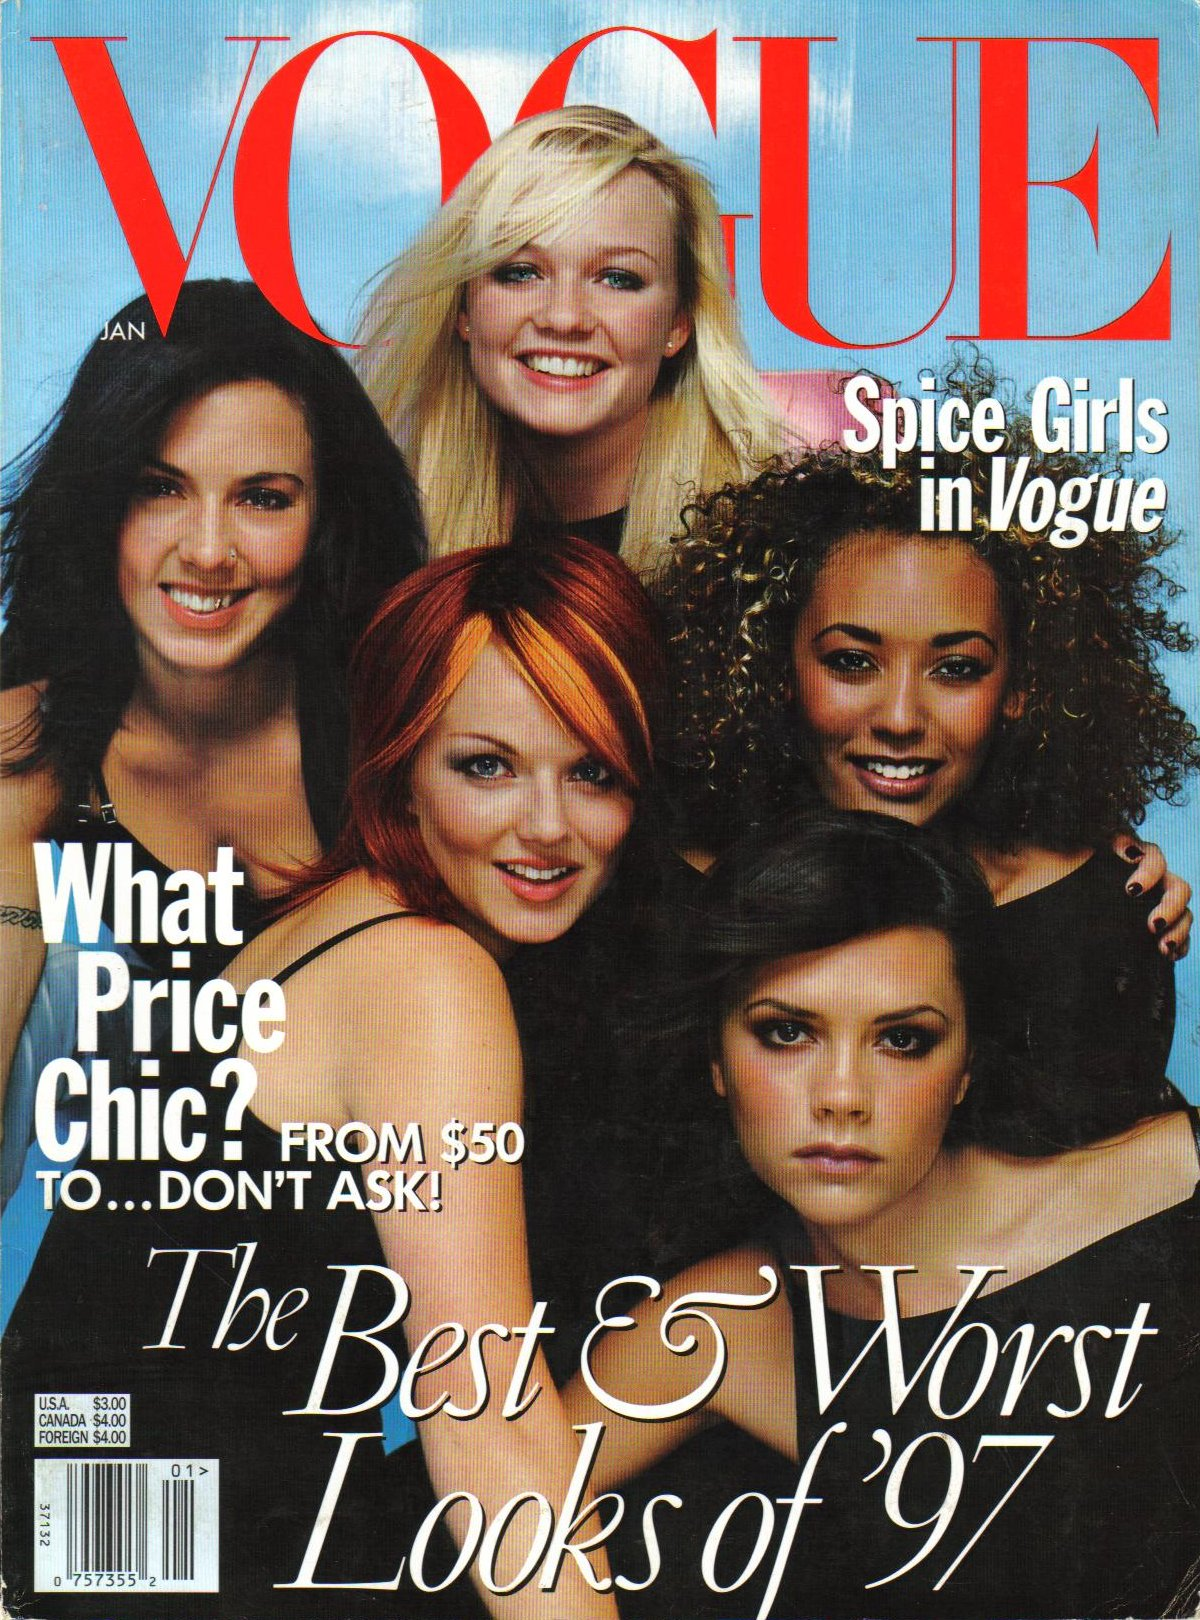 spicegirls vogue.jpg